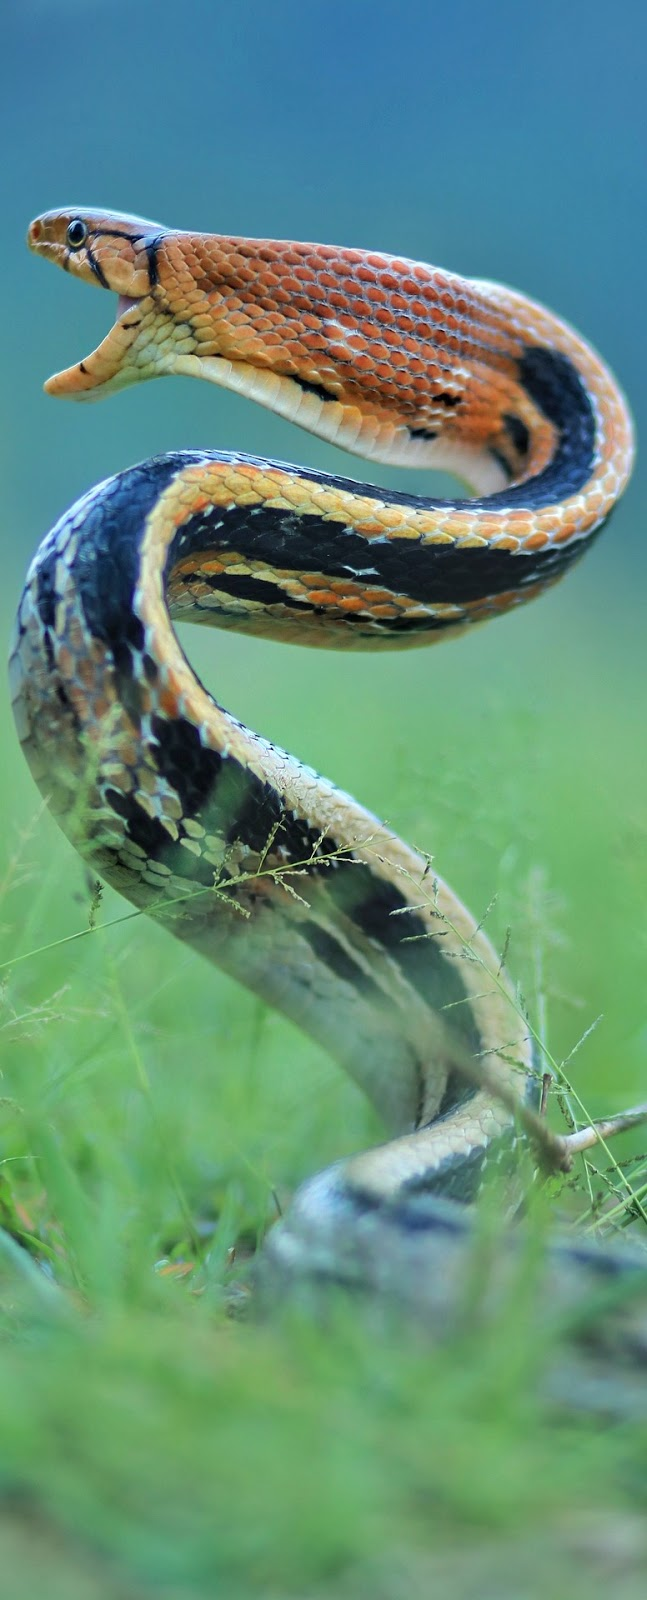 A snake in attack mode.